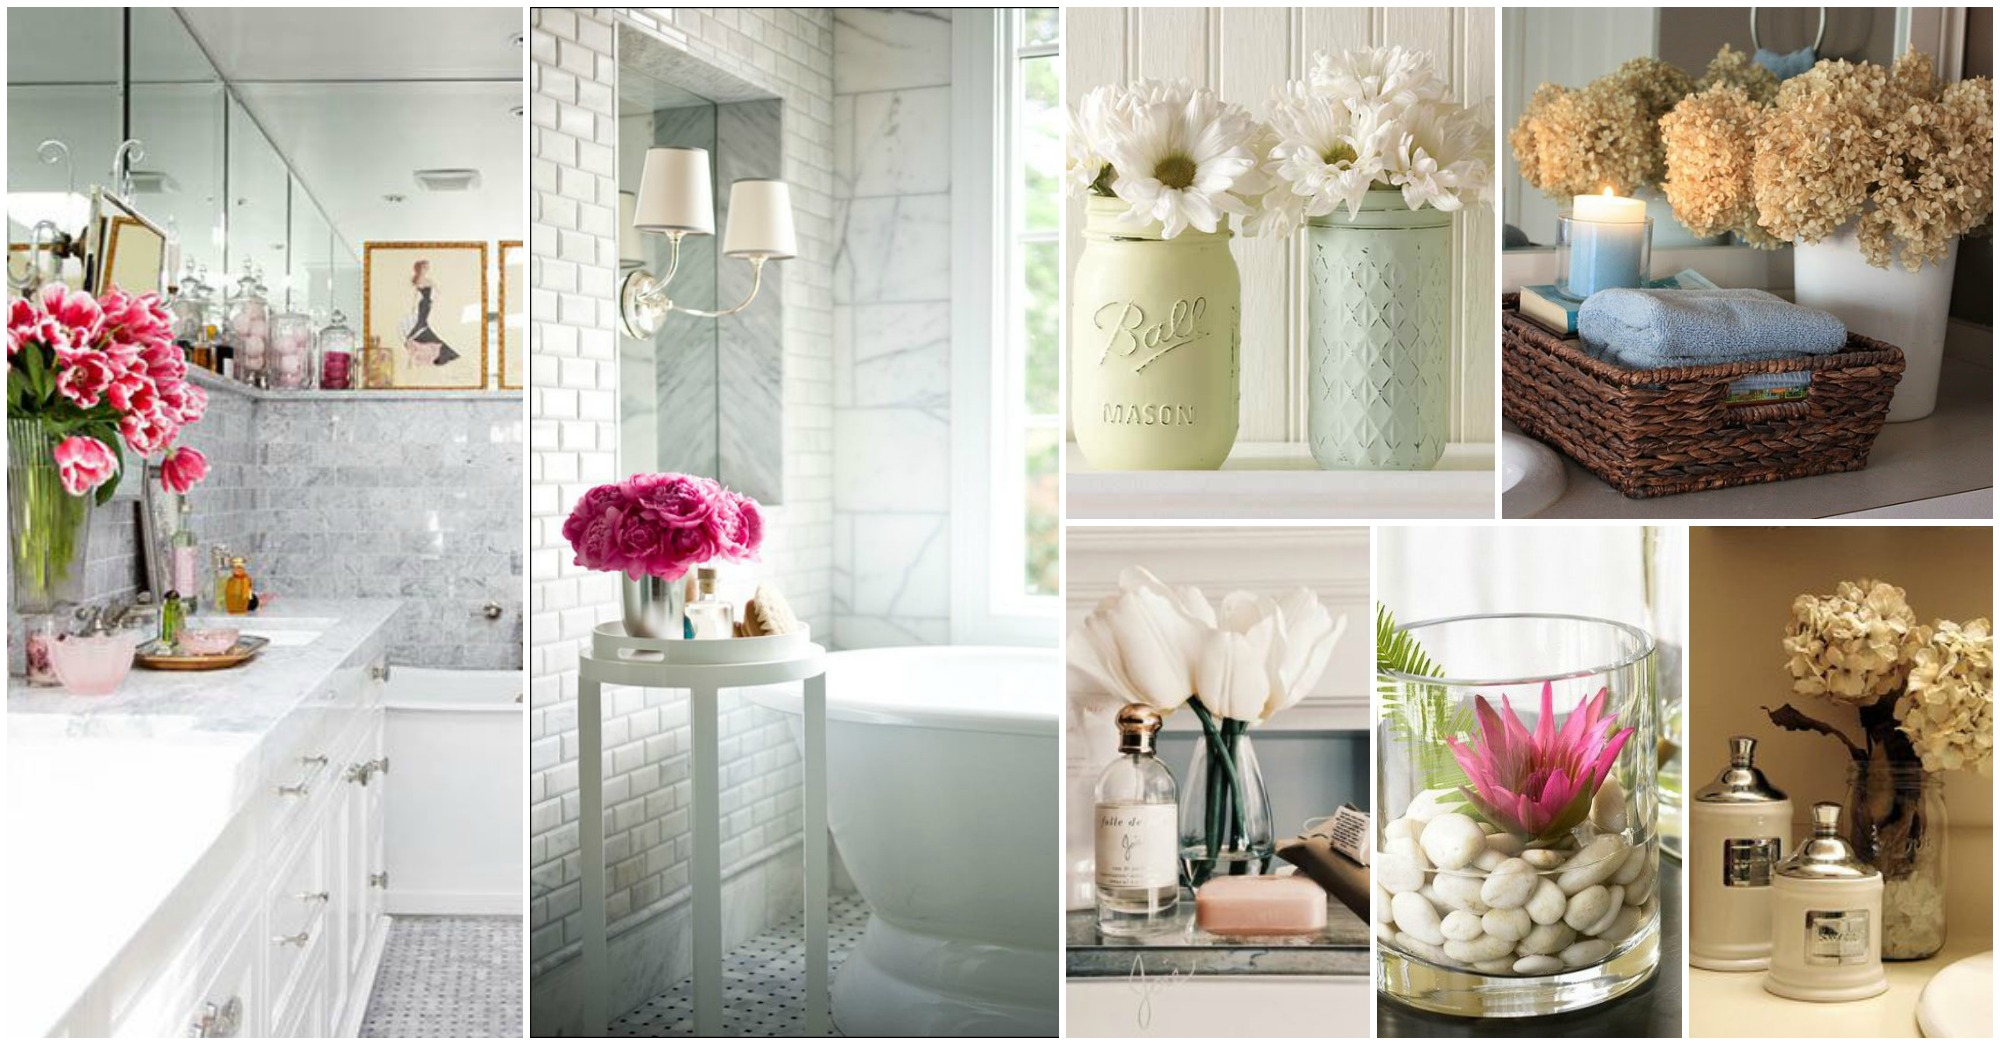 bathroom decorating ideas relaxing flowers bathroom decor ideas that will refresh your bathroom LXVBXDF